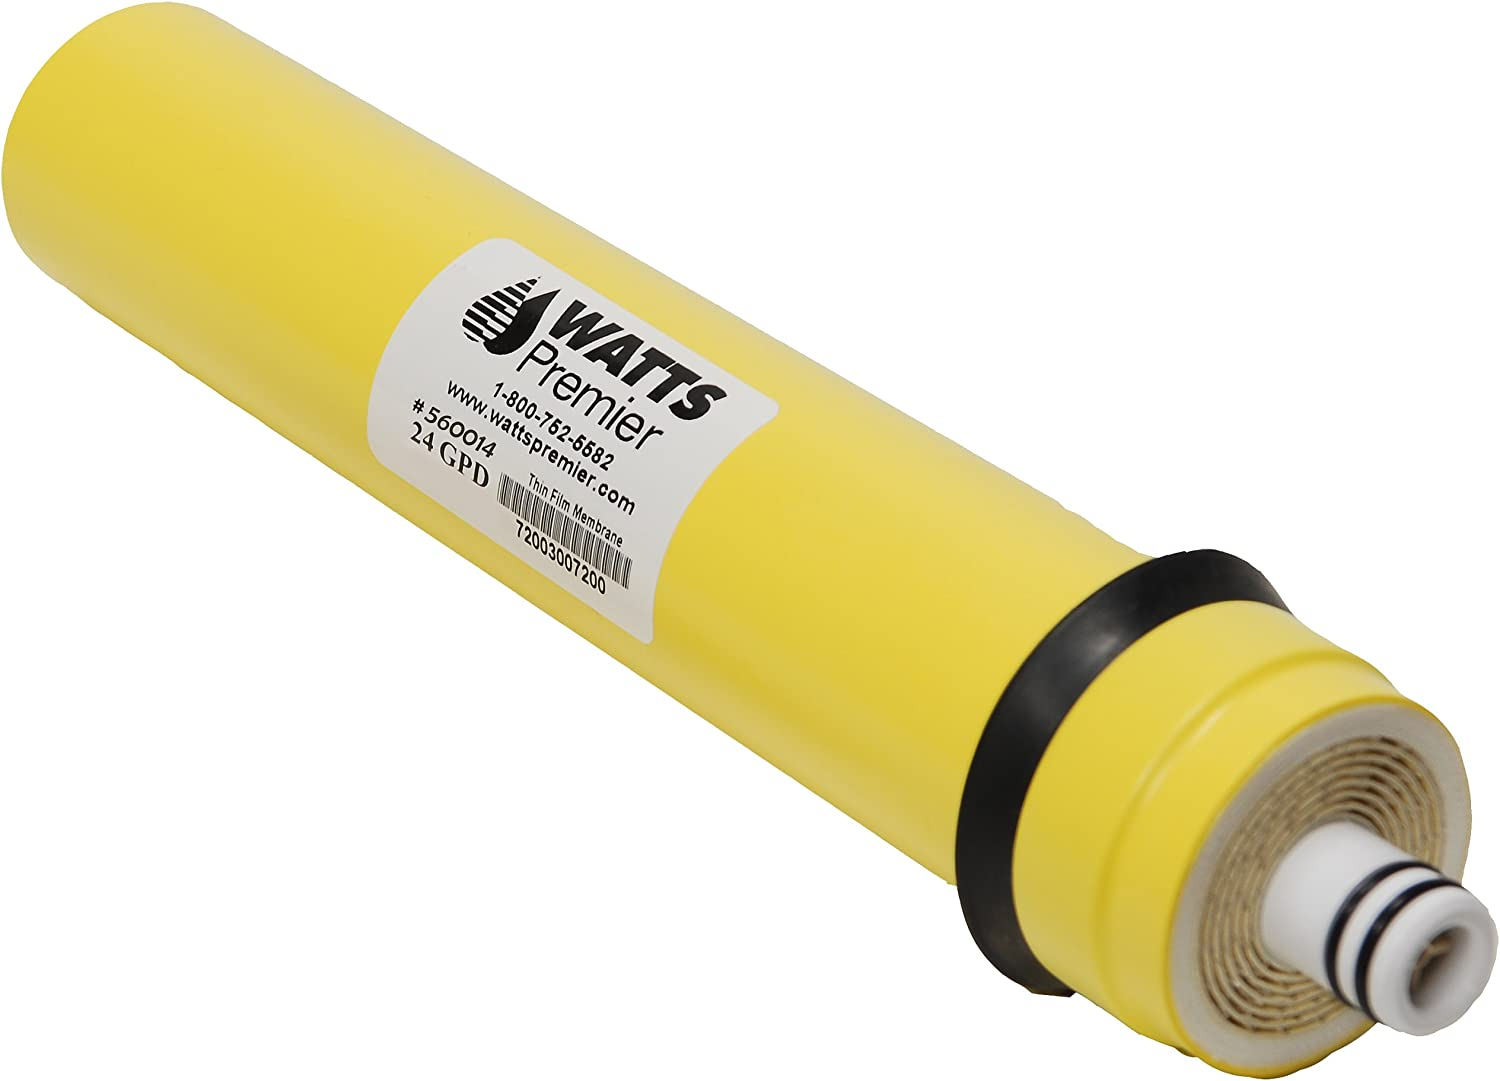 Watts Premier 560014 Membrane 110009 24 GPD Membrane Replaced by 560014, 1-Pack